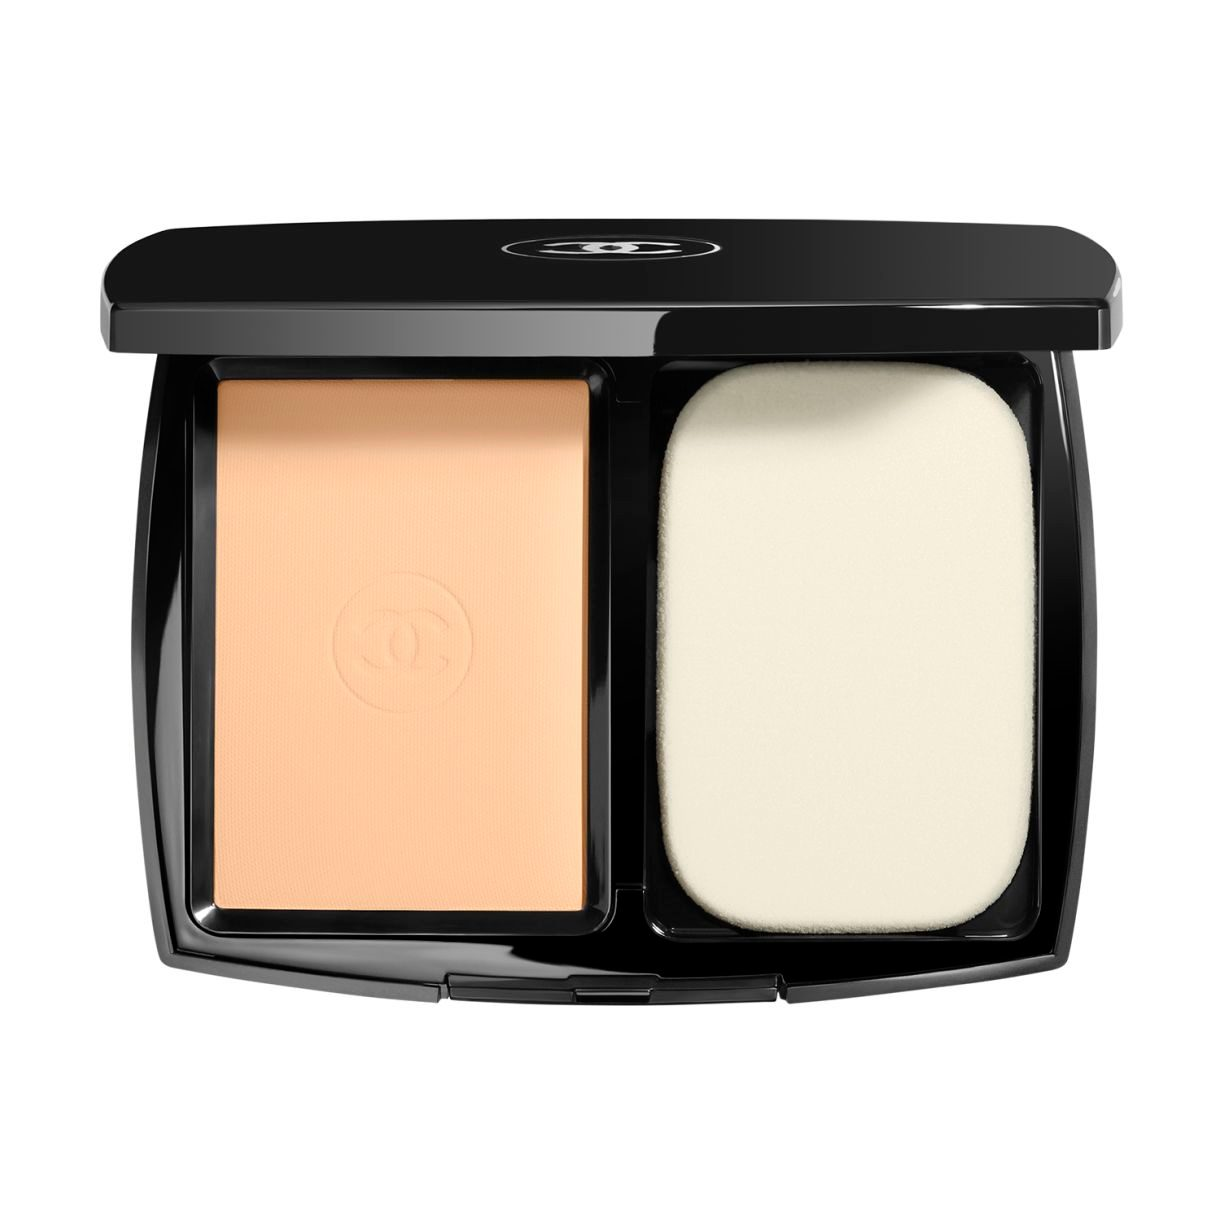 LE TEINT ULTRA TENUE ULTRAWEAR FLAWLESS COMPACT FOUNDATION SPF 15 30 - BEIGE